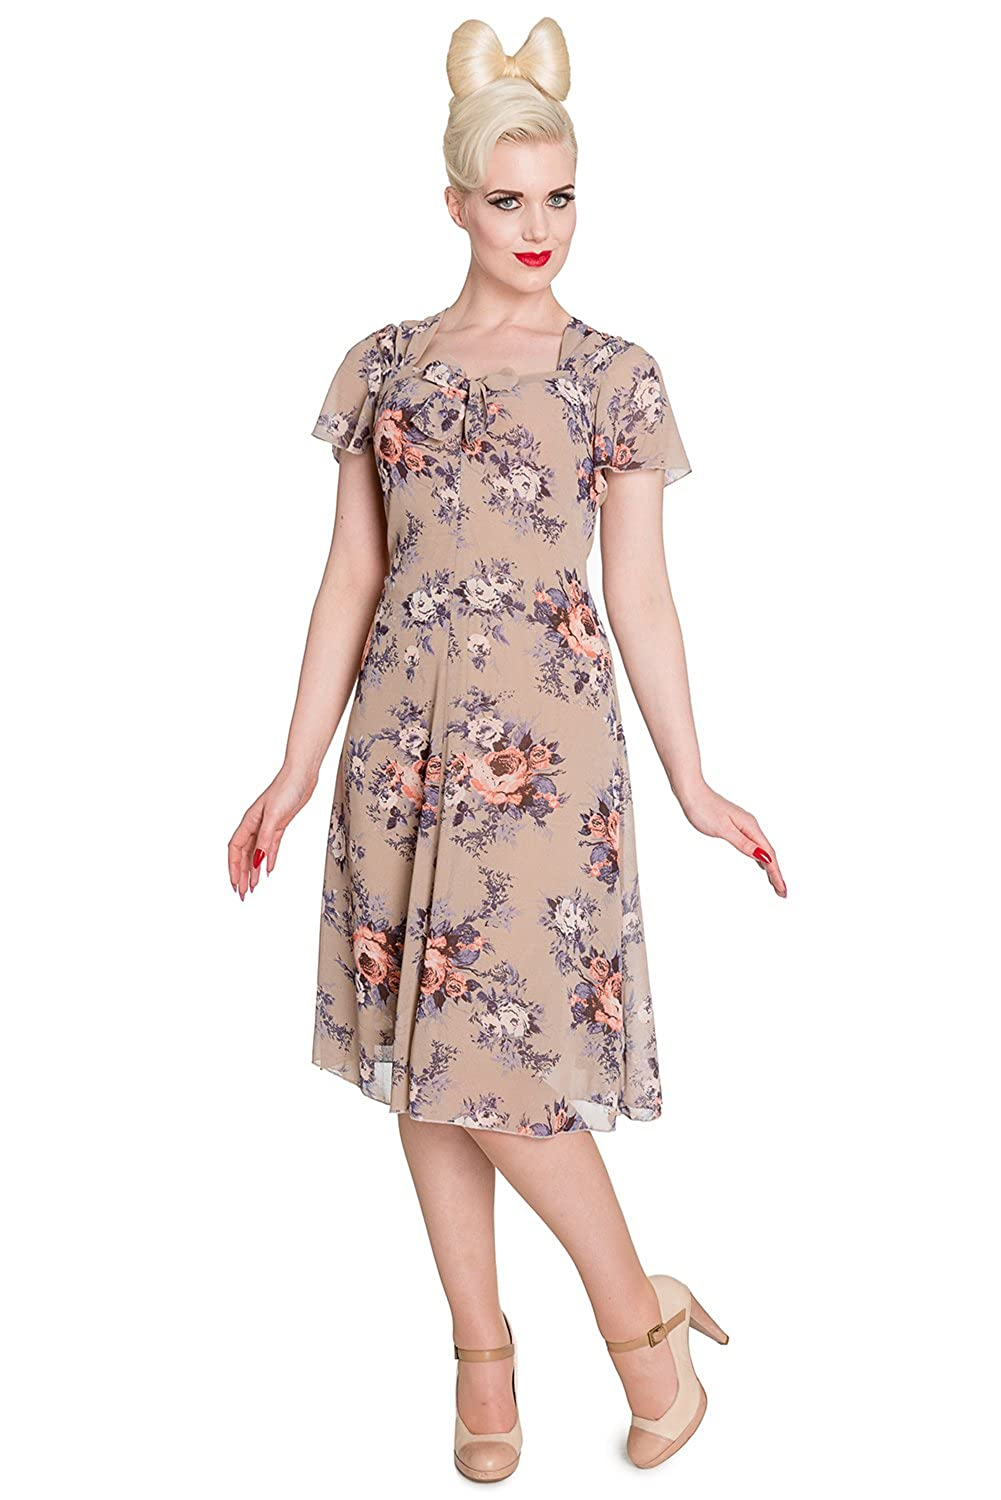 1950s Fashion Dresses:  Floral, Tropical, Tiki, Hawaiian Hell Bunny Holly 40s 50s Vintage Tea Party Dress Regular & Plus Size $36.99 AT vintagedancer.com